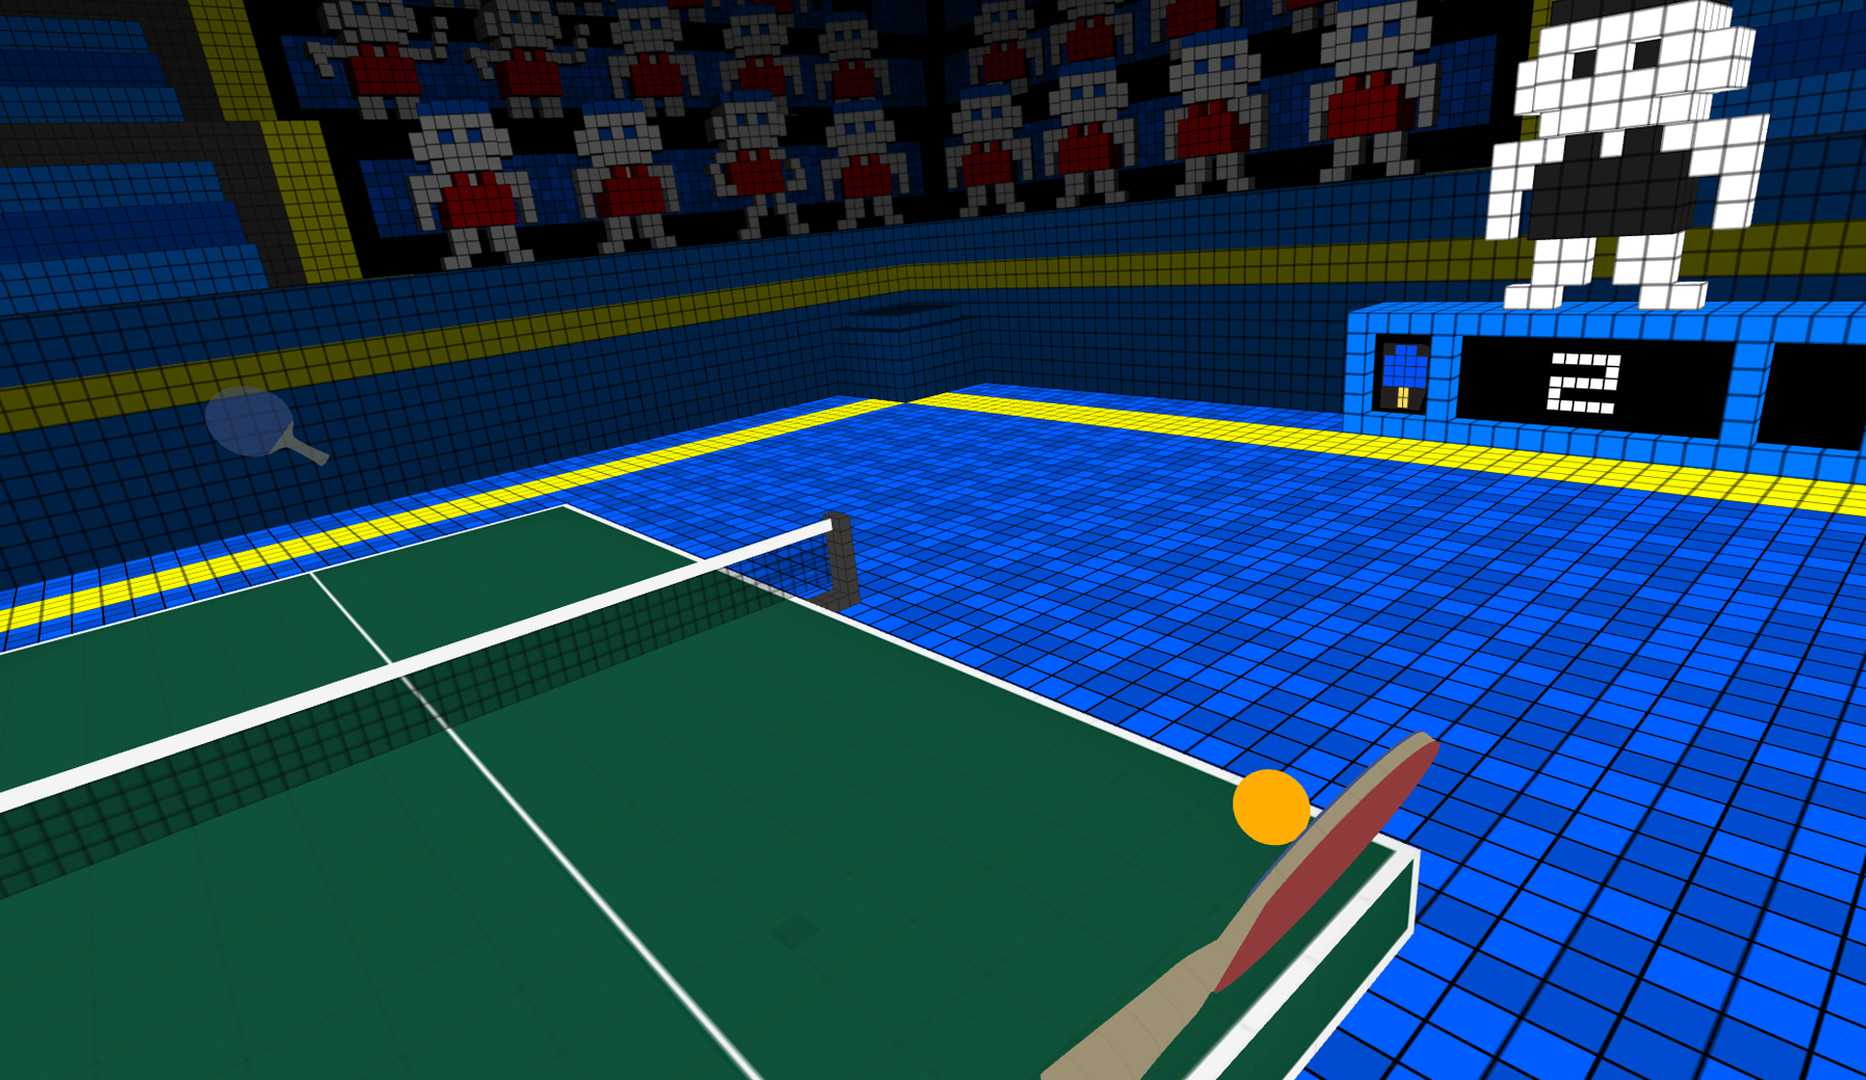 VR Ping Pong